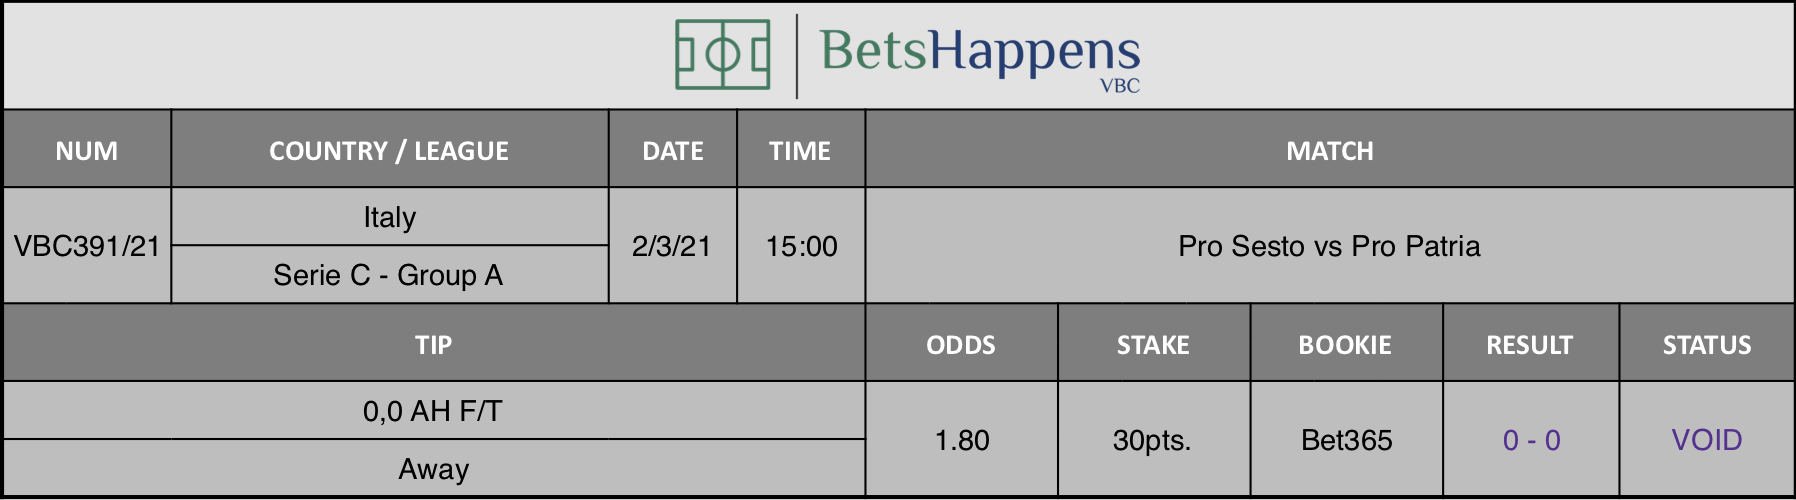 Results of our tip for the Pro Sesto vs Pro Patria match where 0,0 AH F/T  Away is recommended.